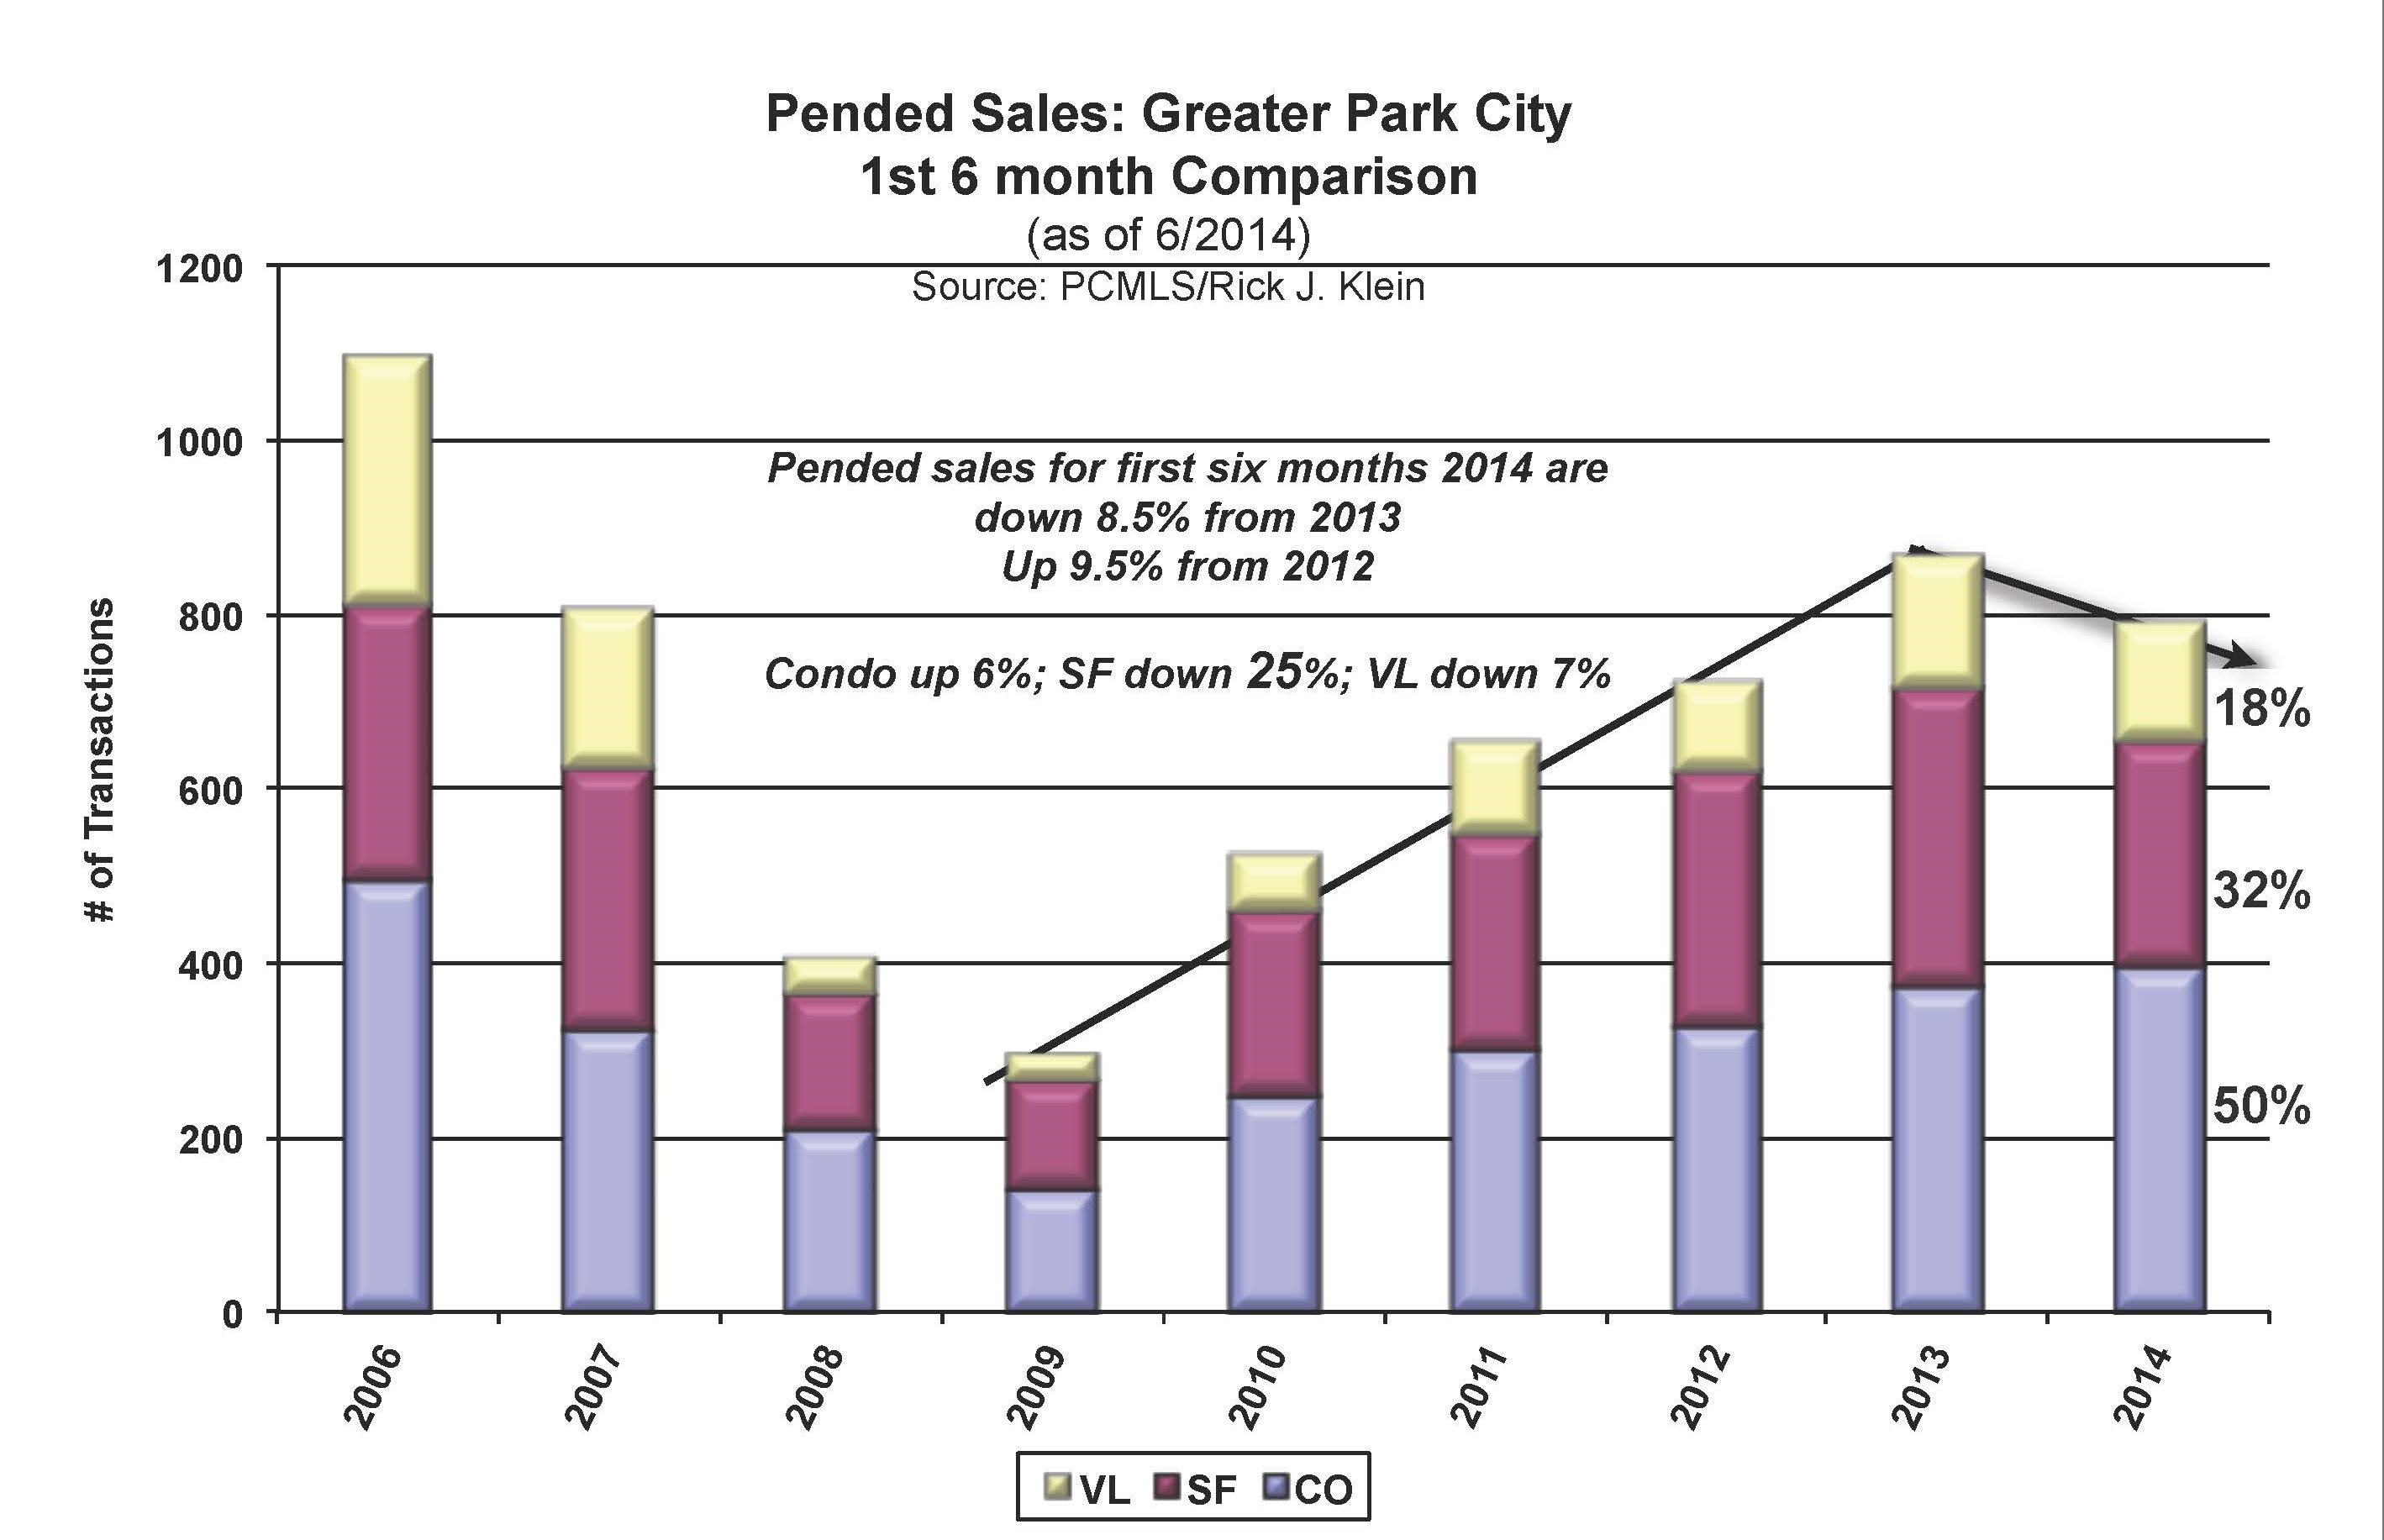 park city pended sales